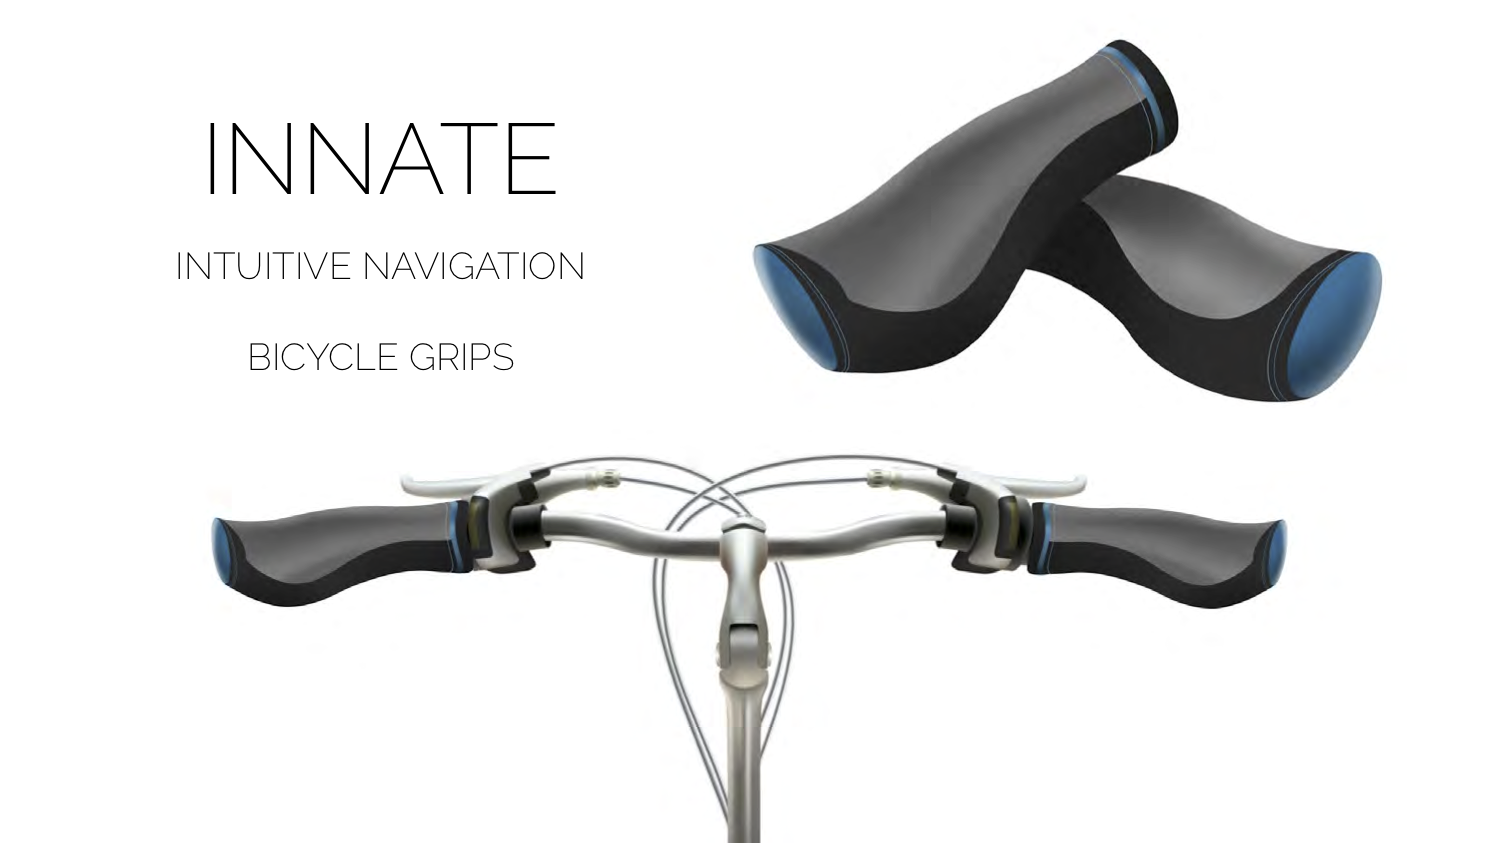 "3 - As of July 1st 2019, Amsterdam has officially banned the use mobile phones while biking. How then do we use navigation safely while biking? Dhaval, an industrial designer proposed a hands free solution titled ""INNATE"" an Intuitive Navigation System for bike grips to connect your favorite Map app and guide you safely through the city via haptics and signals built into your handlebars!"